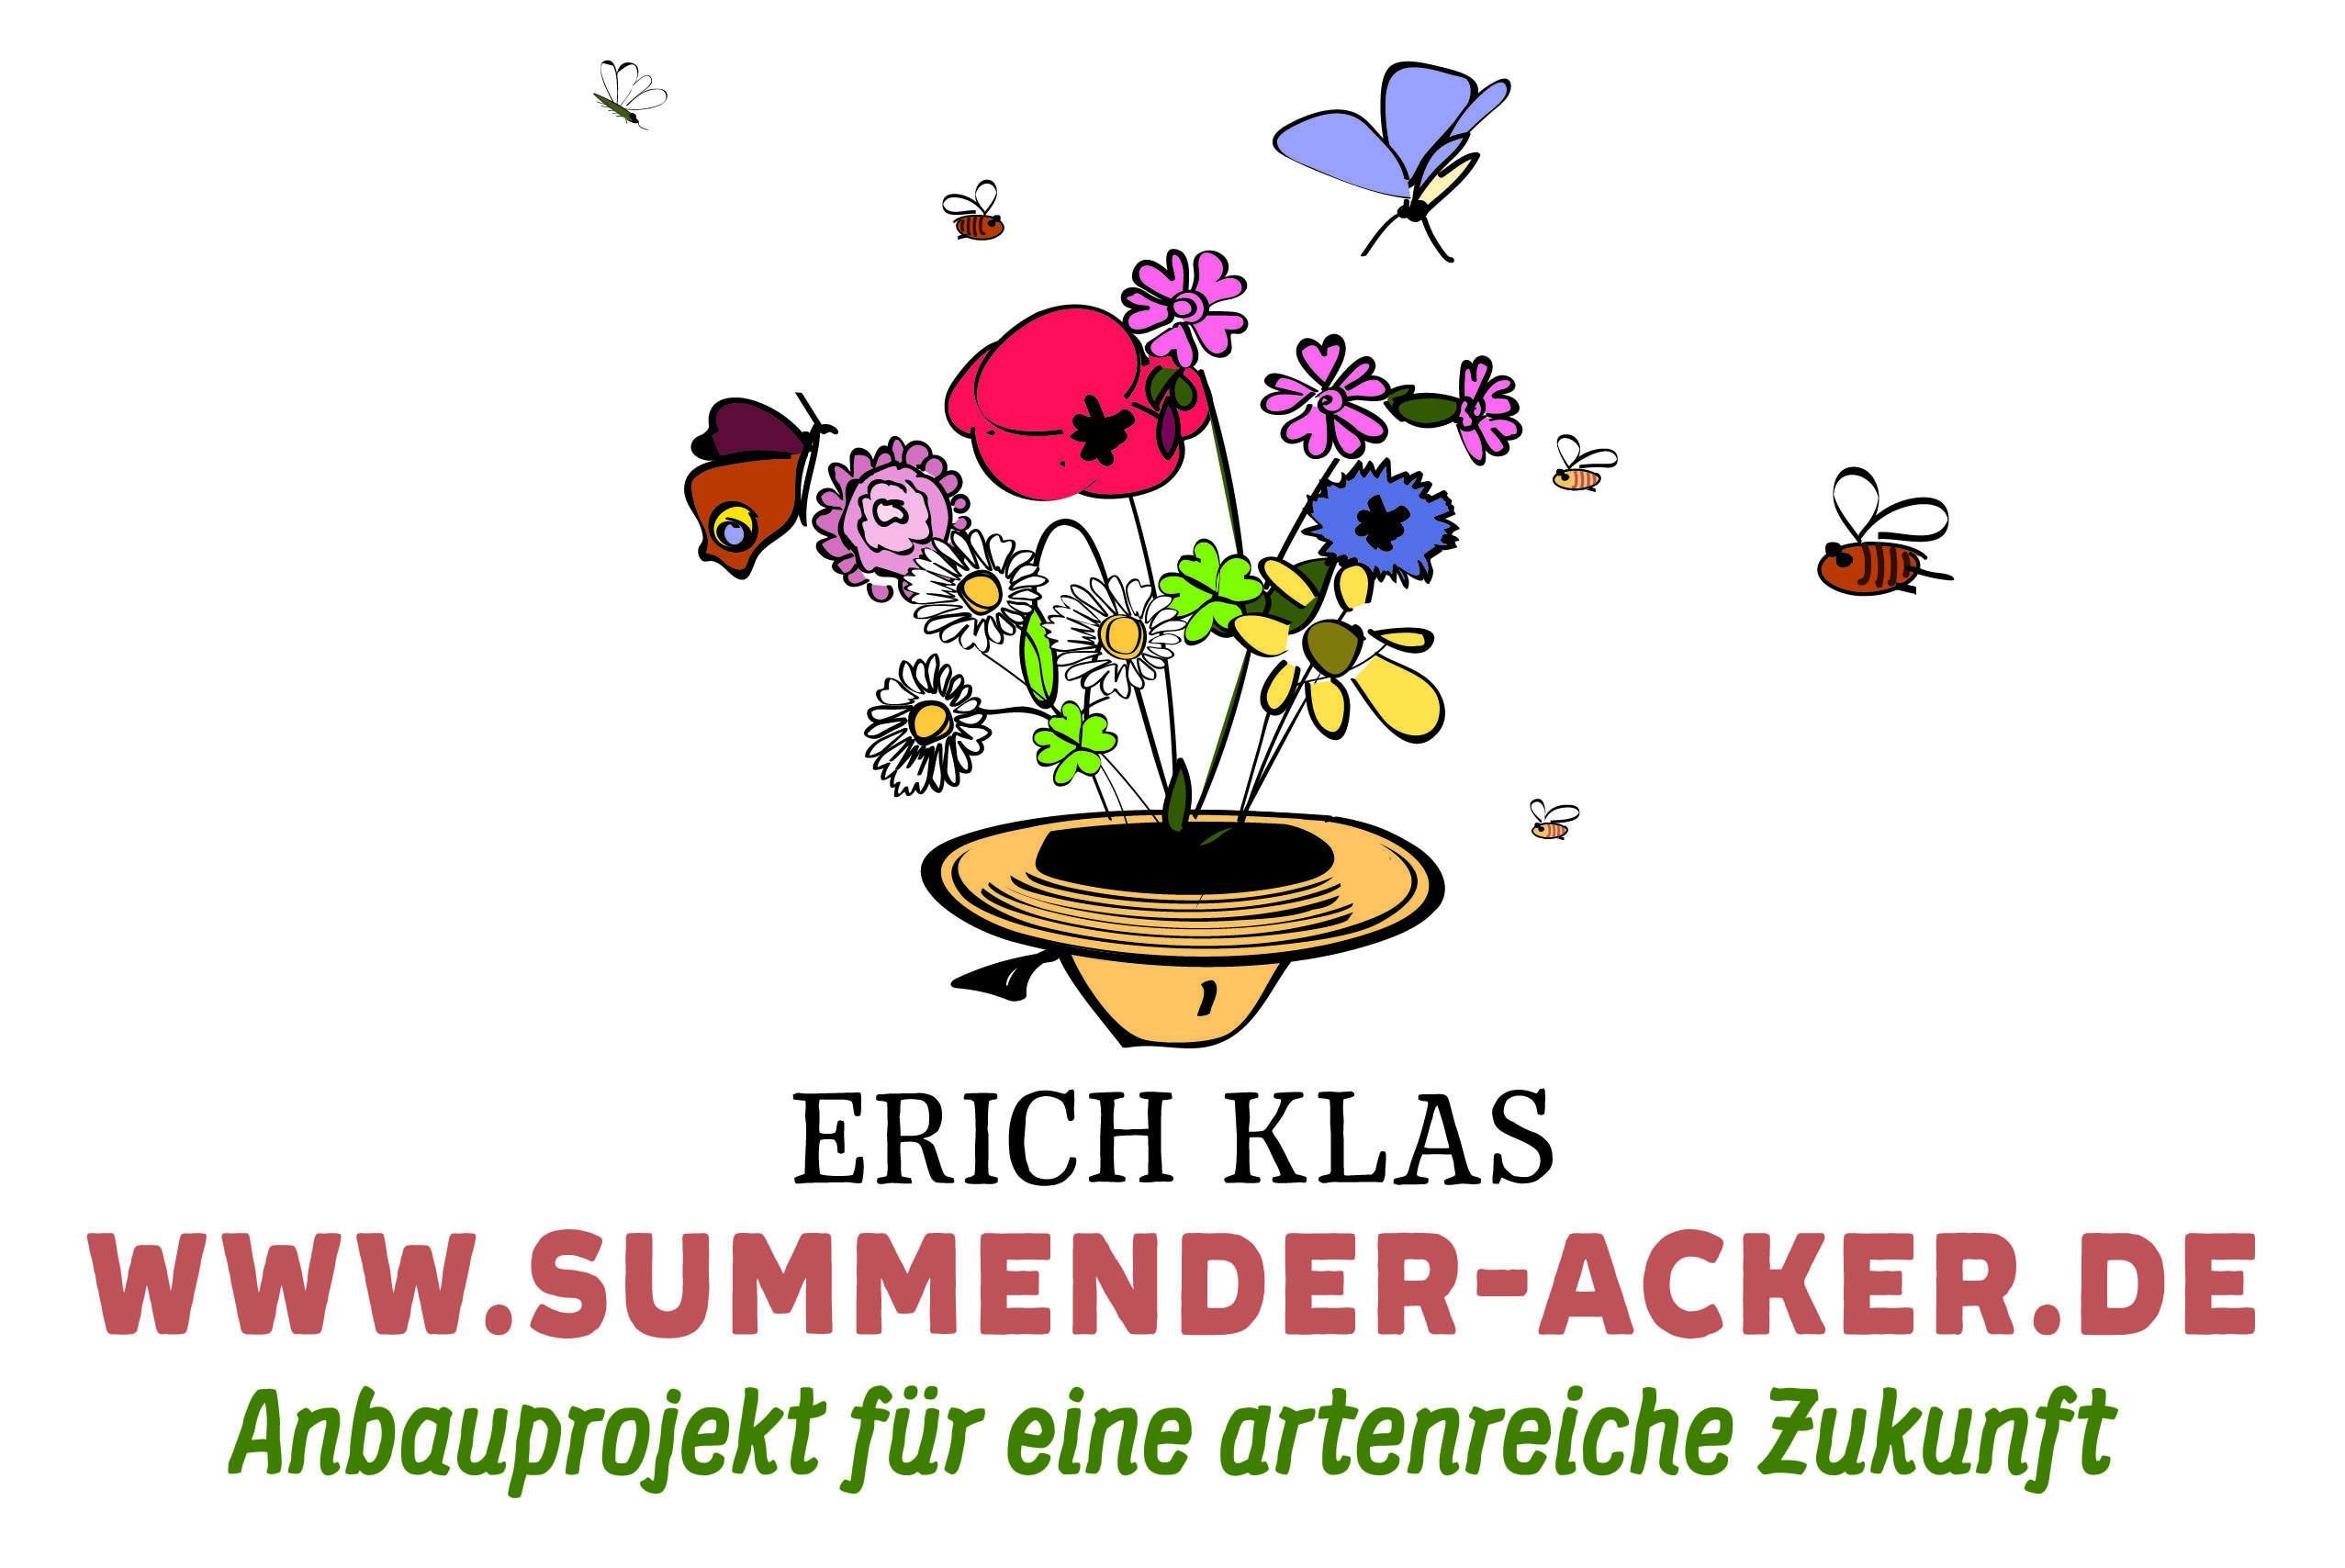 Der Summende-Acker-Blog summt!